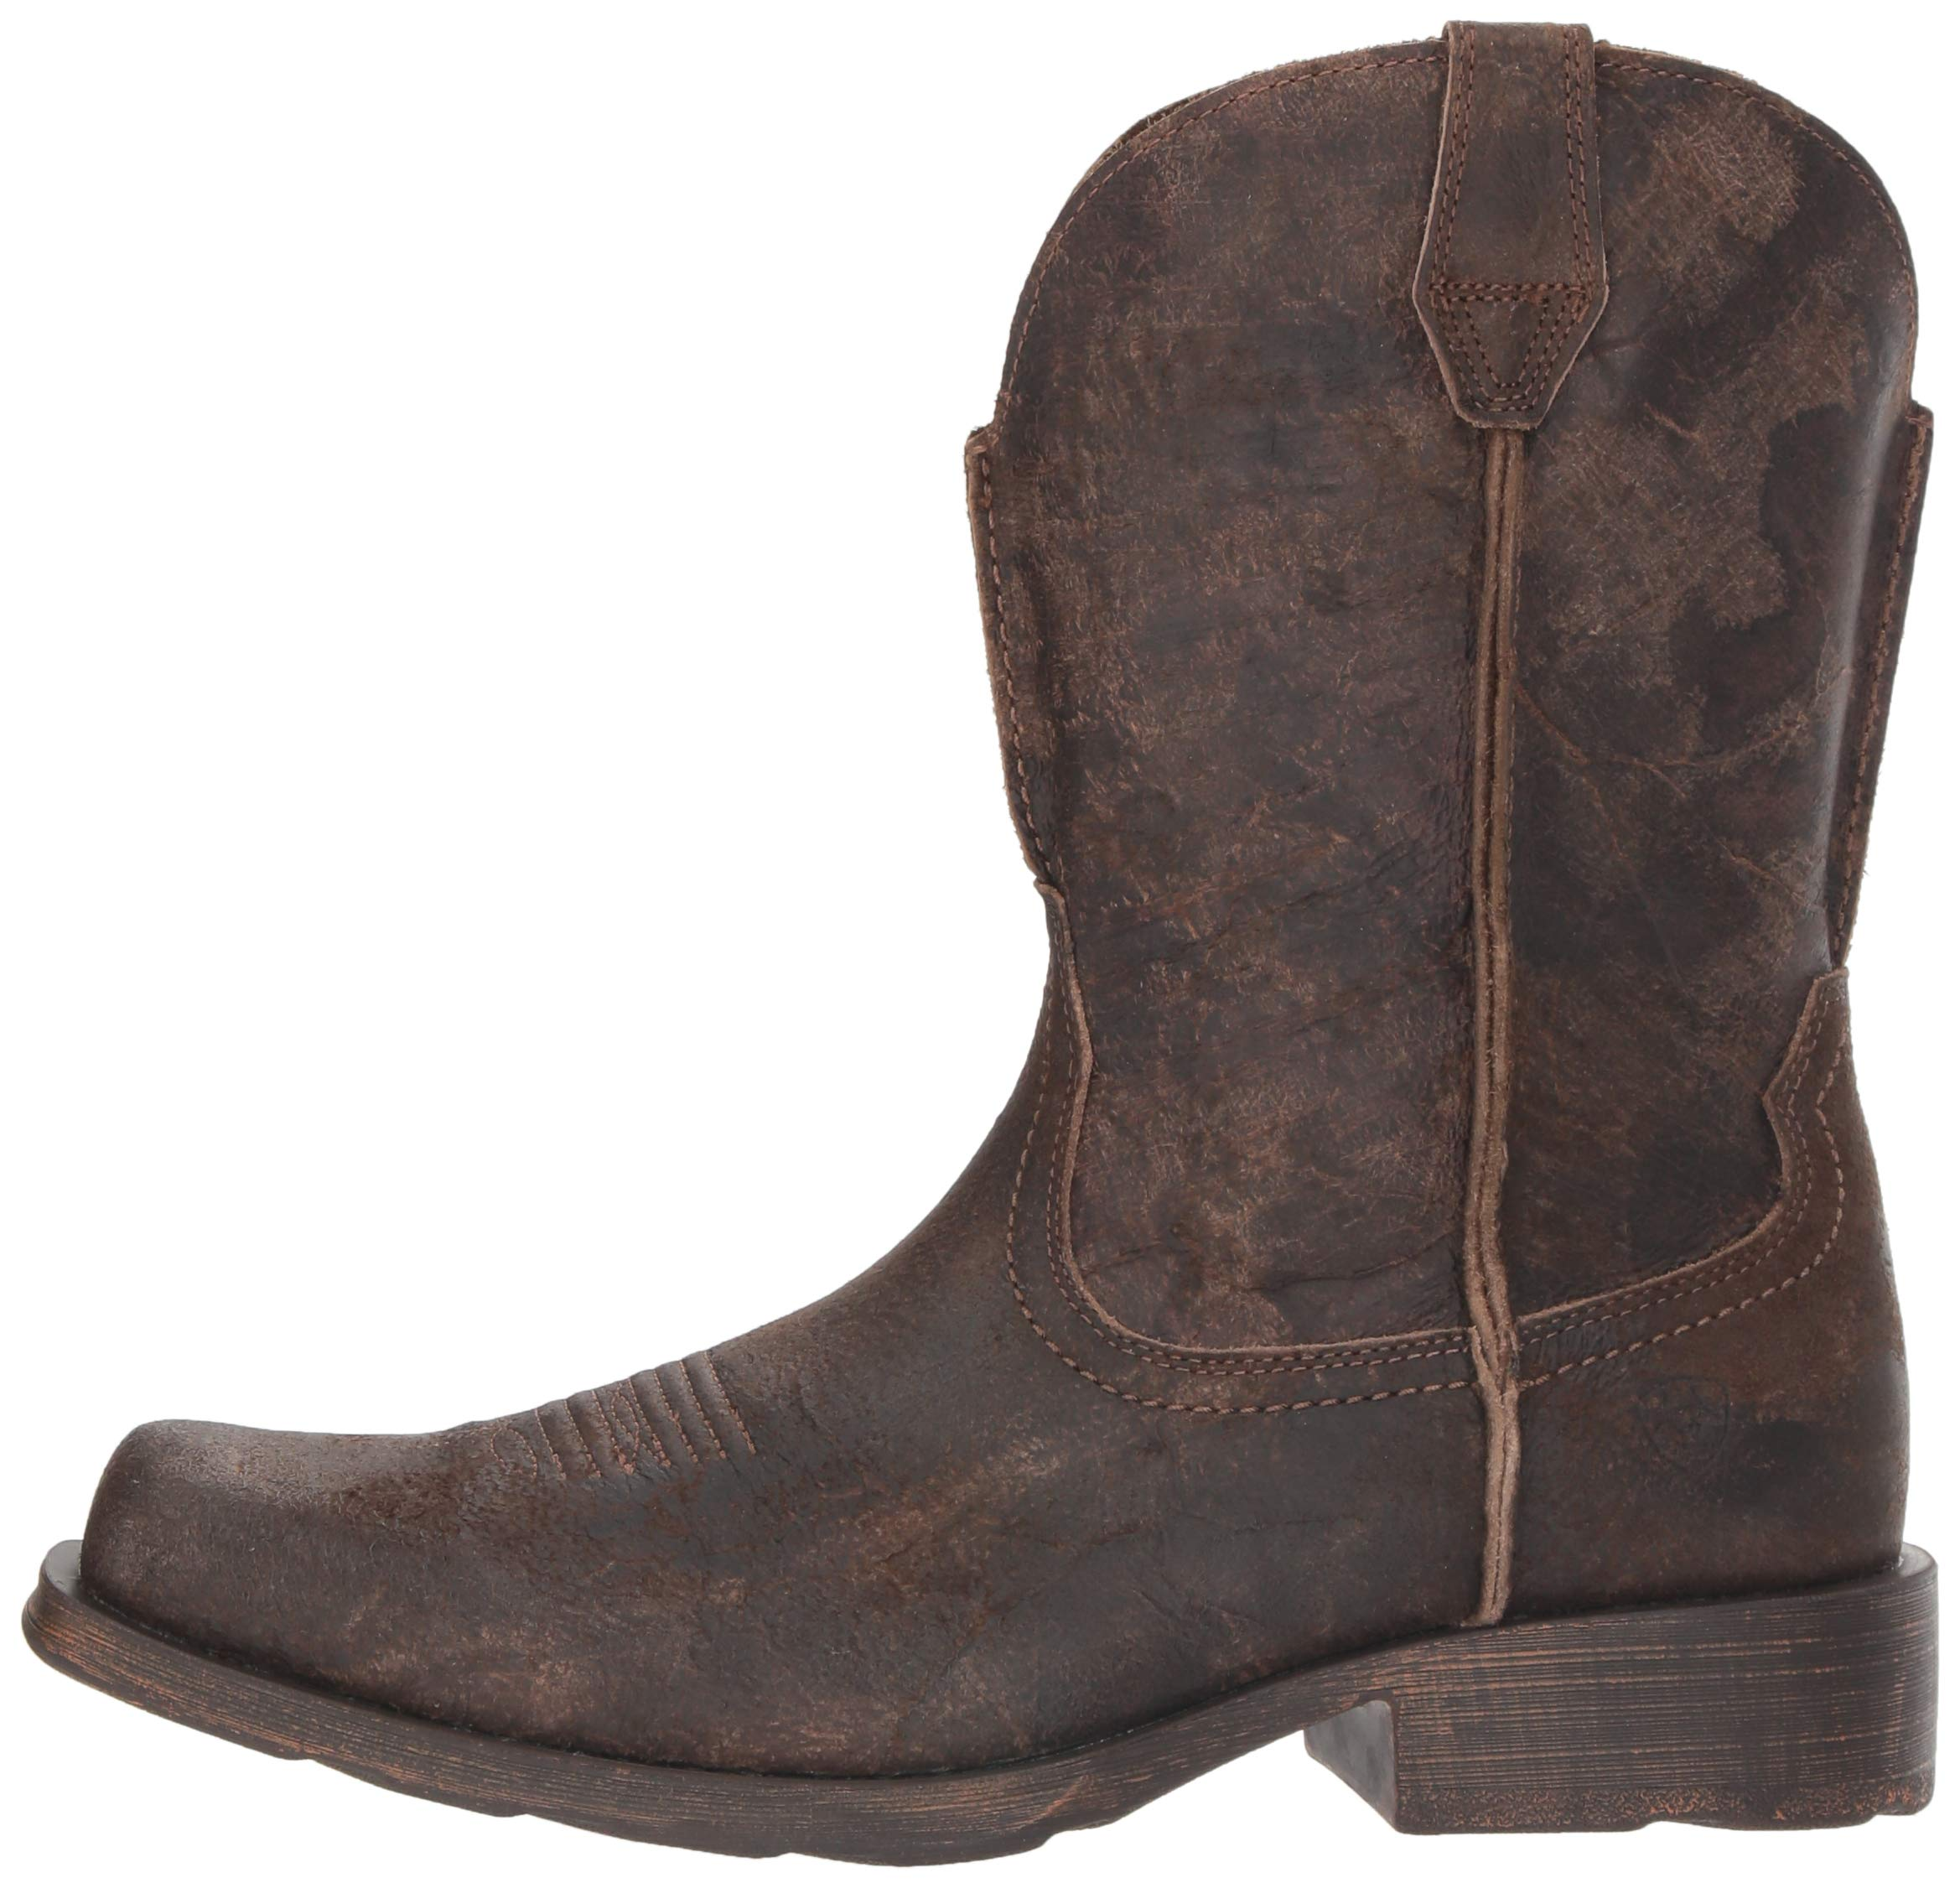 Ariat Men's Rambler Western Boot, Antiqued Grey, 13 2E US by ARIAT (Image #5)